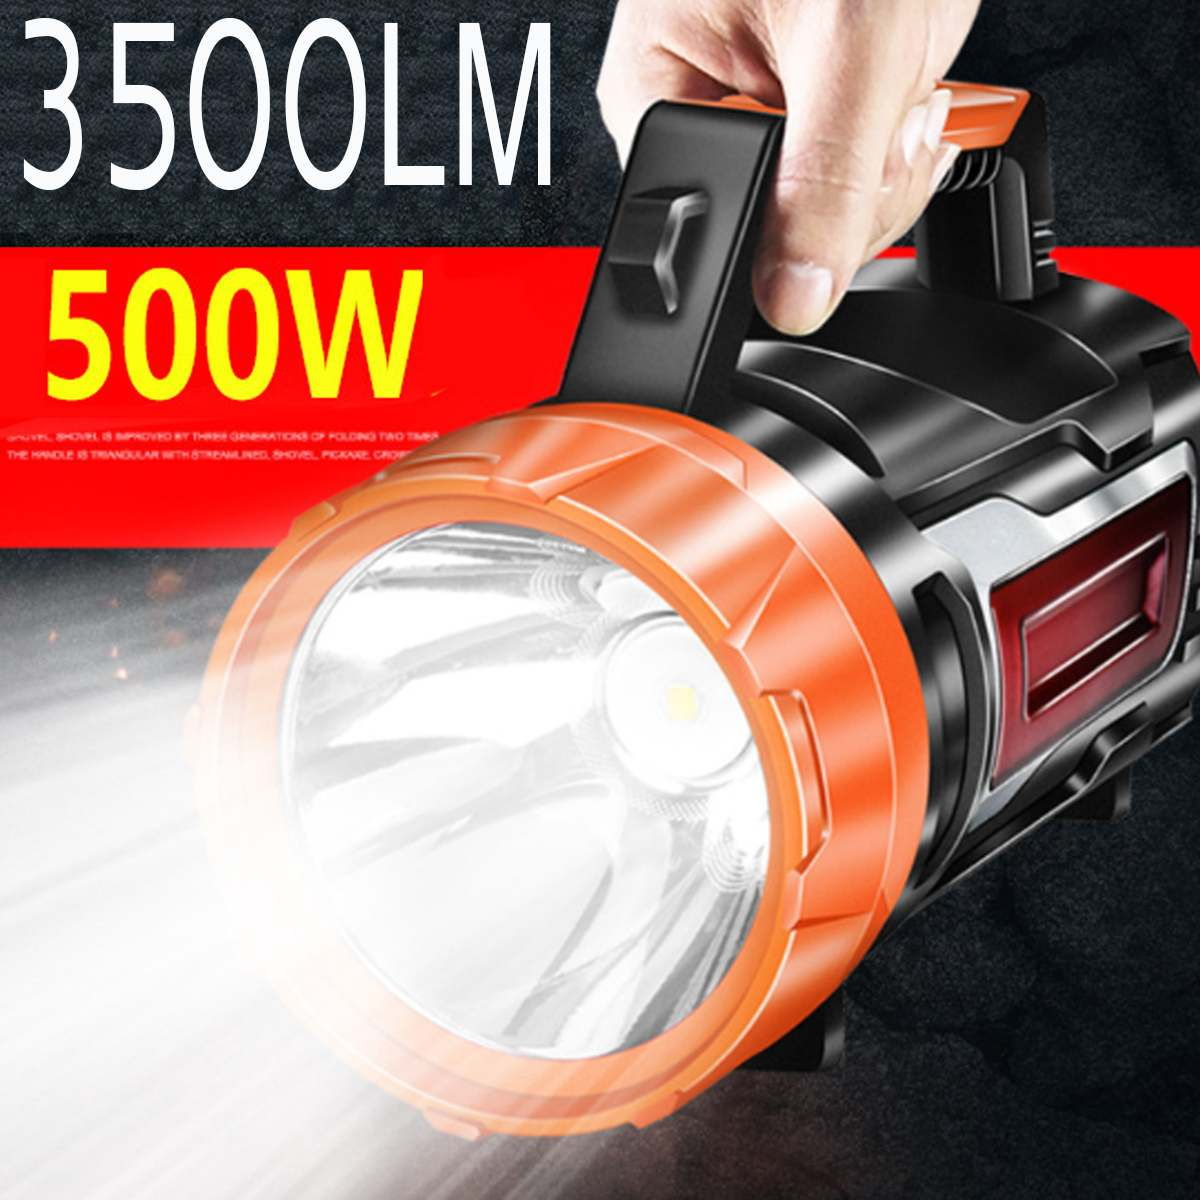 3000m LED Lantern Searchlight LED Flashlight Torch Light Rechargeable Battery Lamp Powerful FlashLights For Camping Hunting